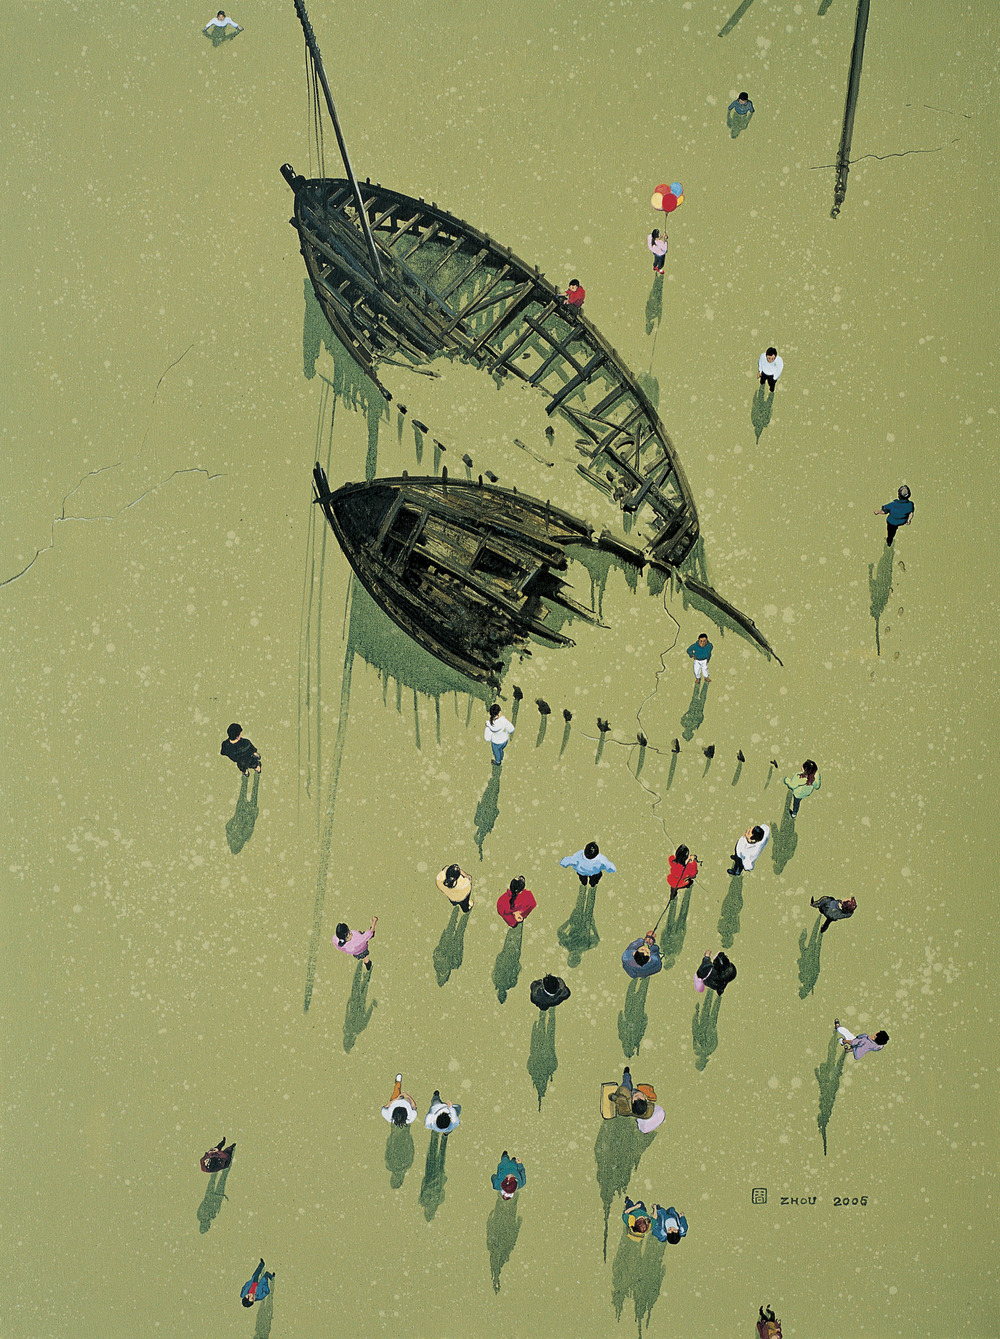 Zhou Jinhua 周金华, Shipwrecks No.1 沉船 No.1, 2006, Oil on canvas 布面油画, 145 x 110 cm